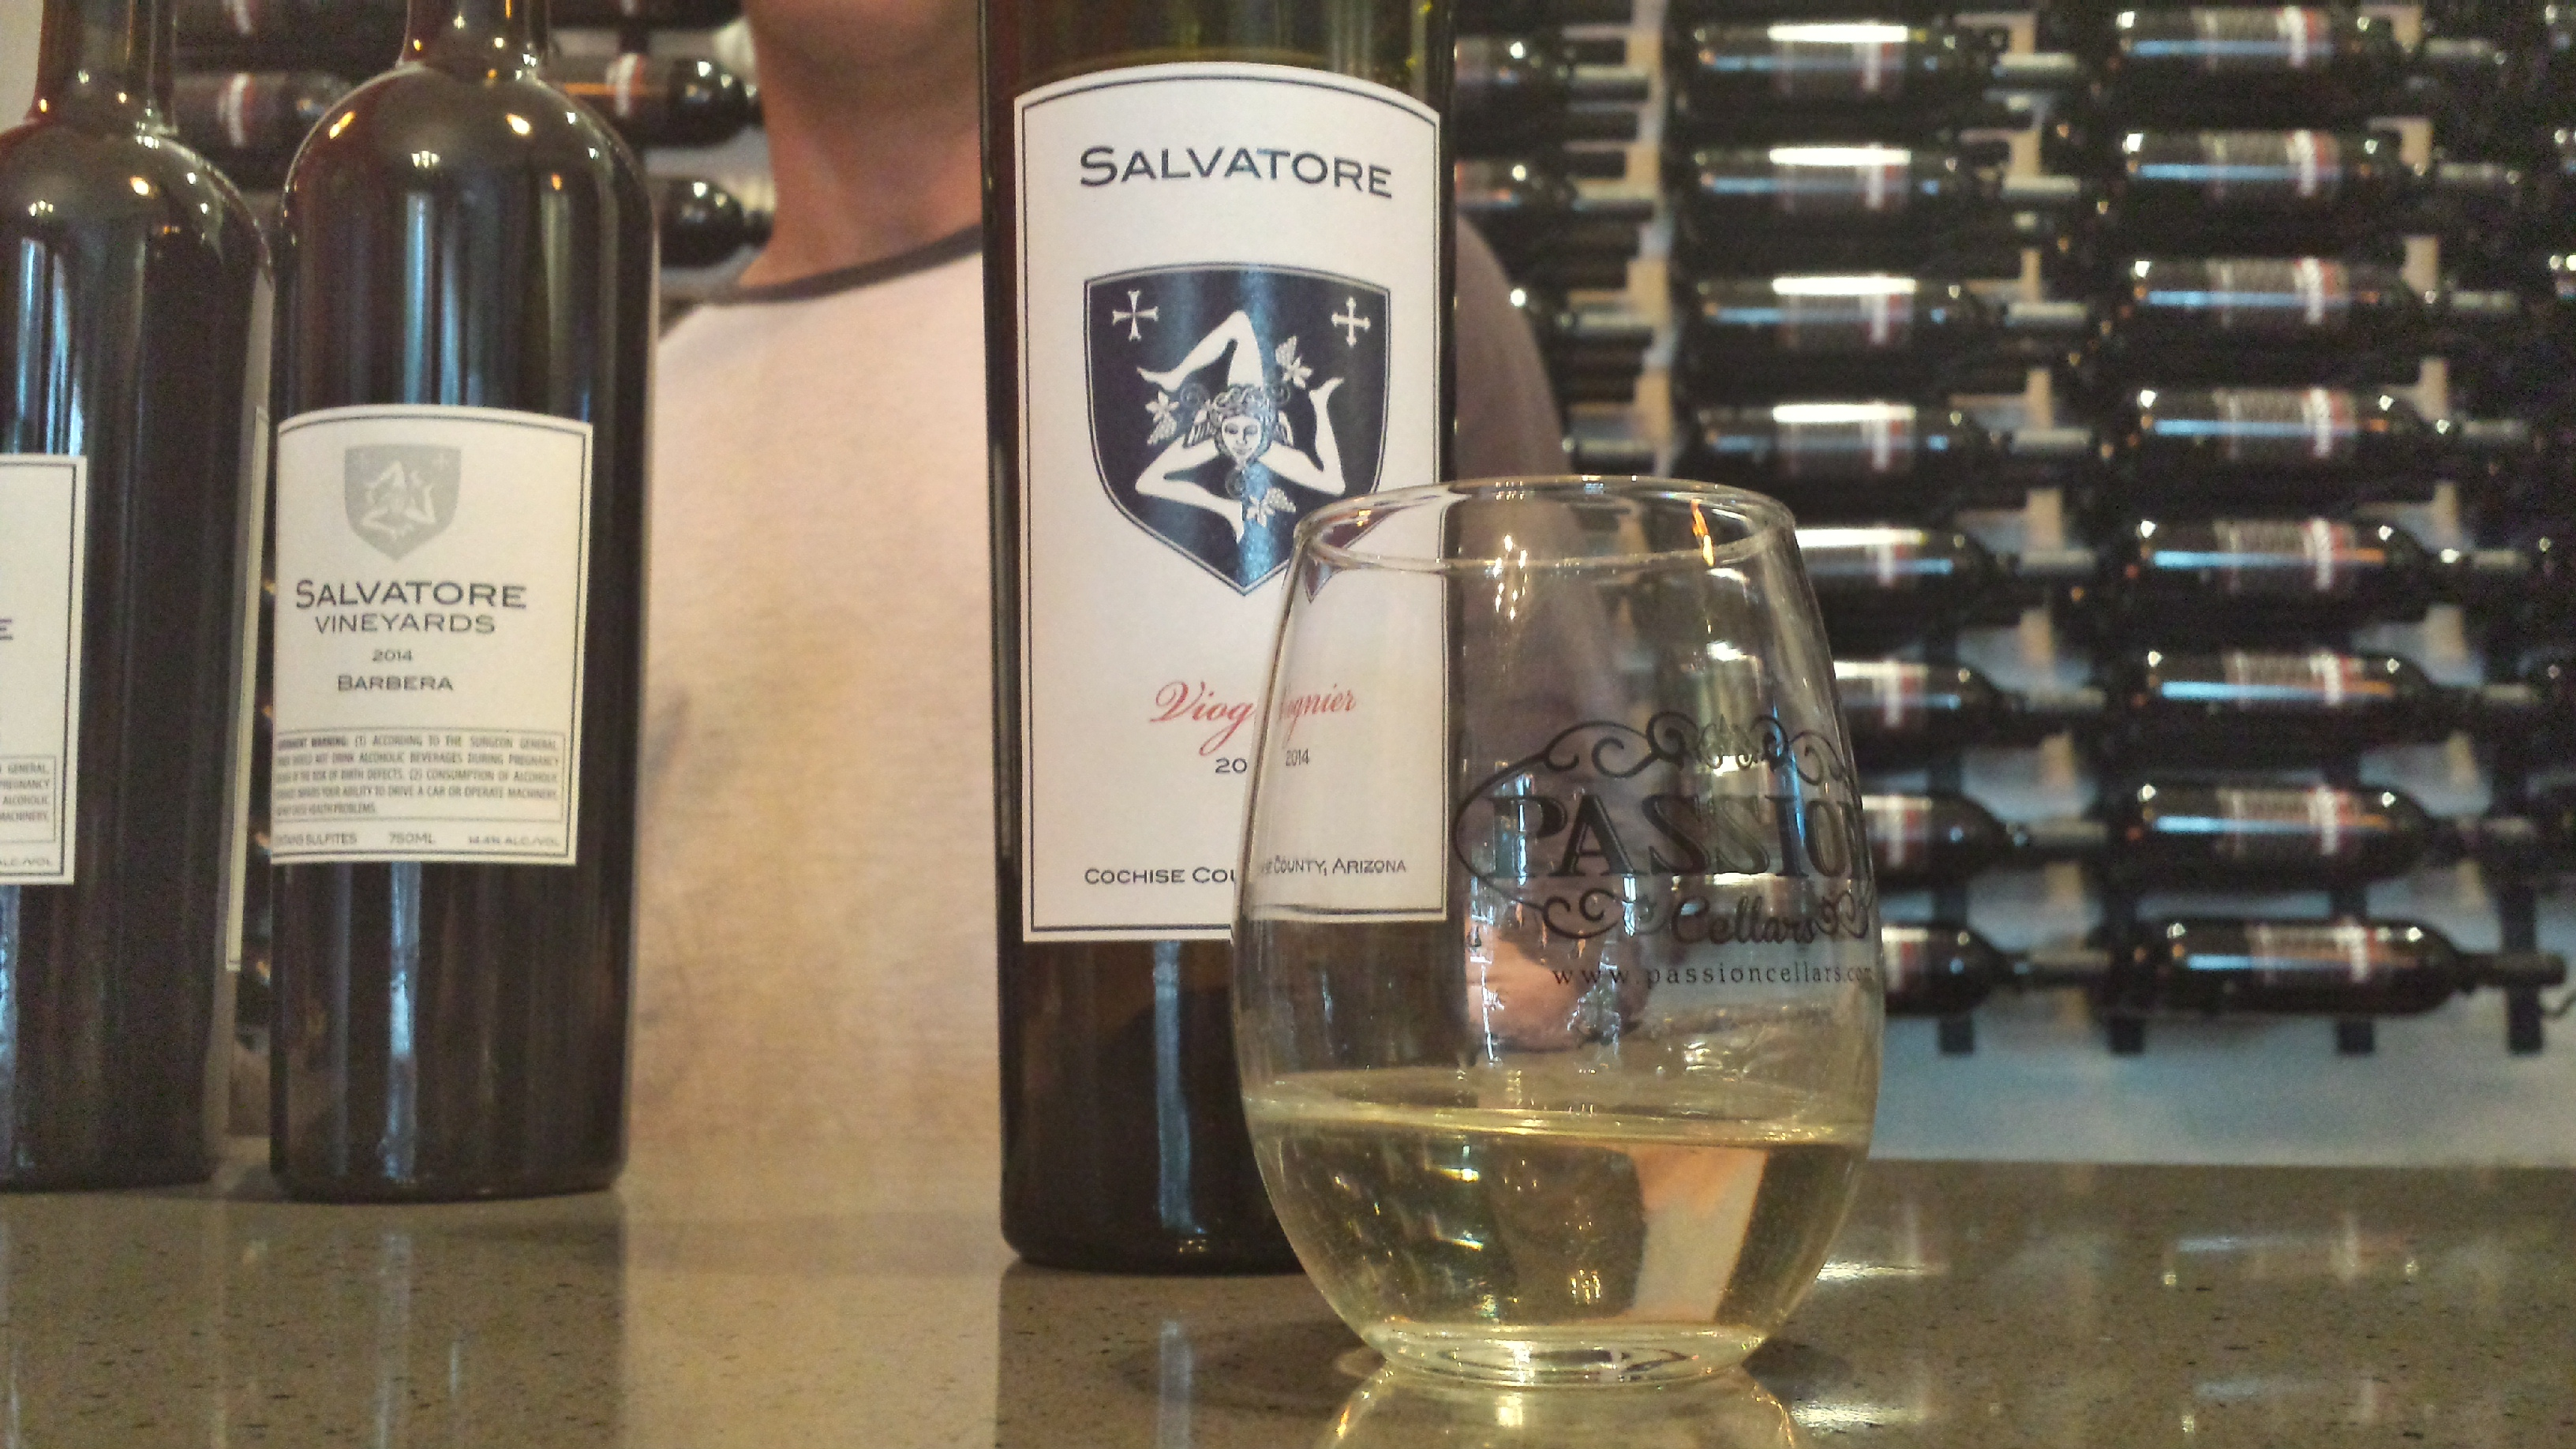 Salvatore Vineyards 2014 Viognier